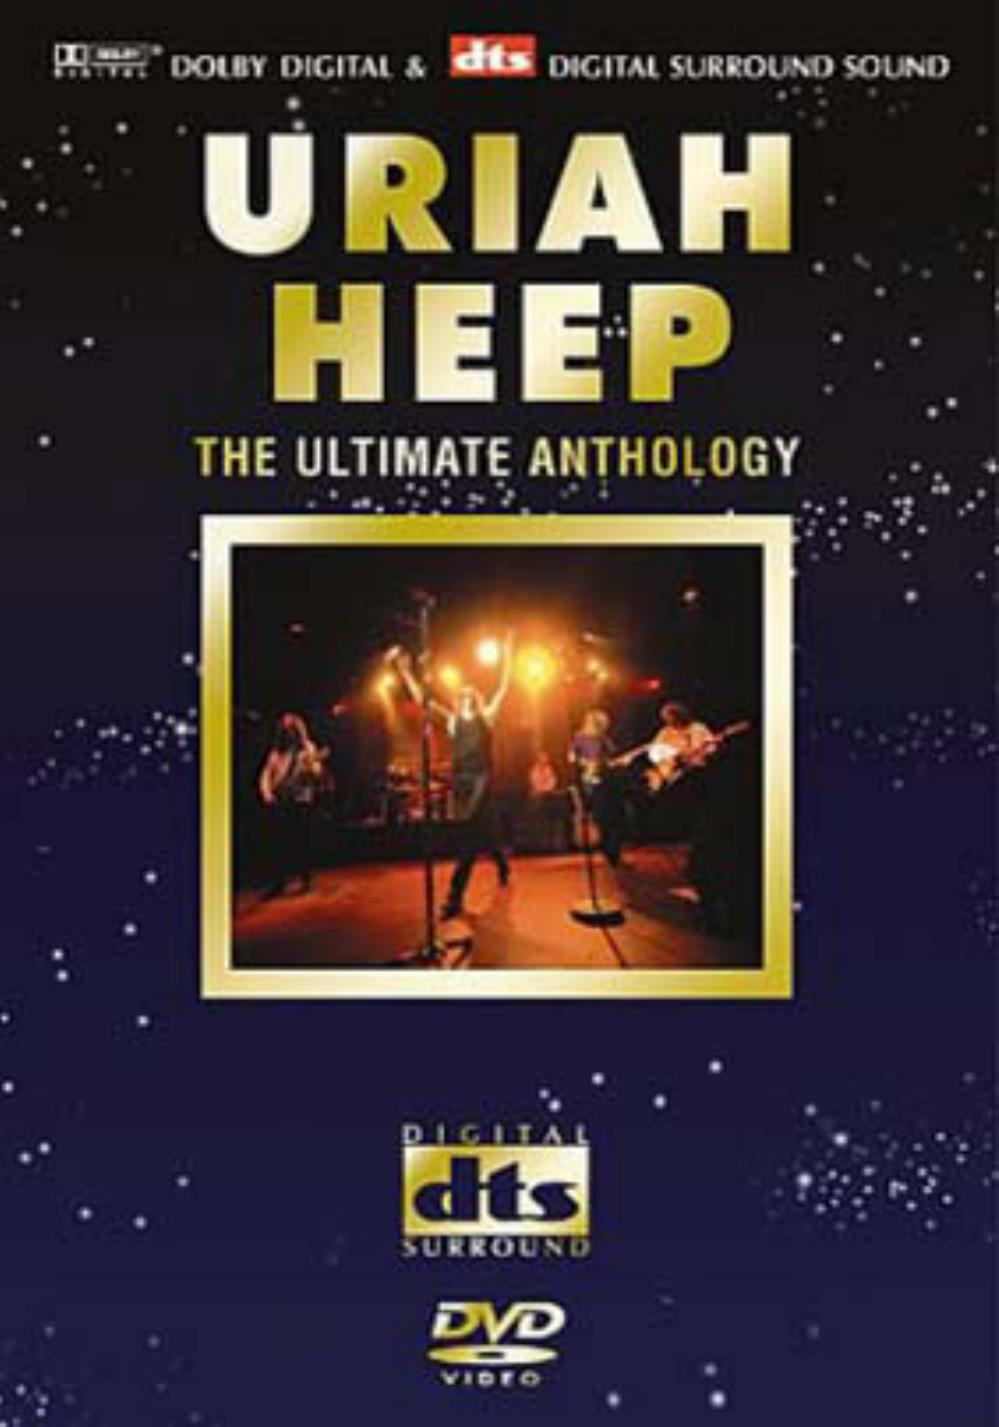 Uriah Heep - The Ultimate Anthology DVD (album) cover